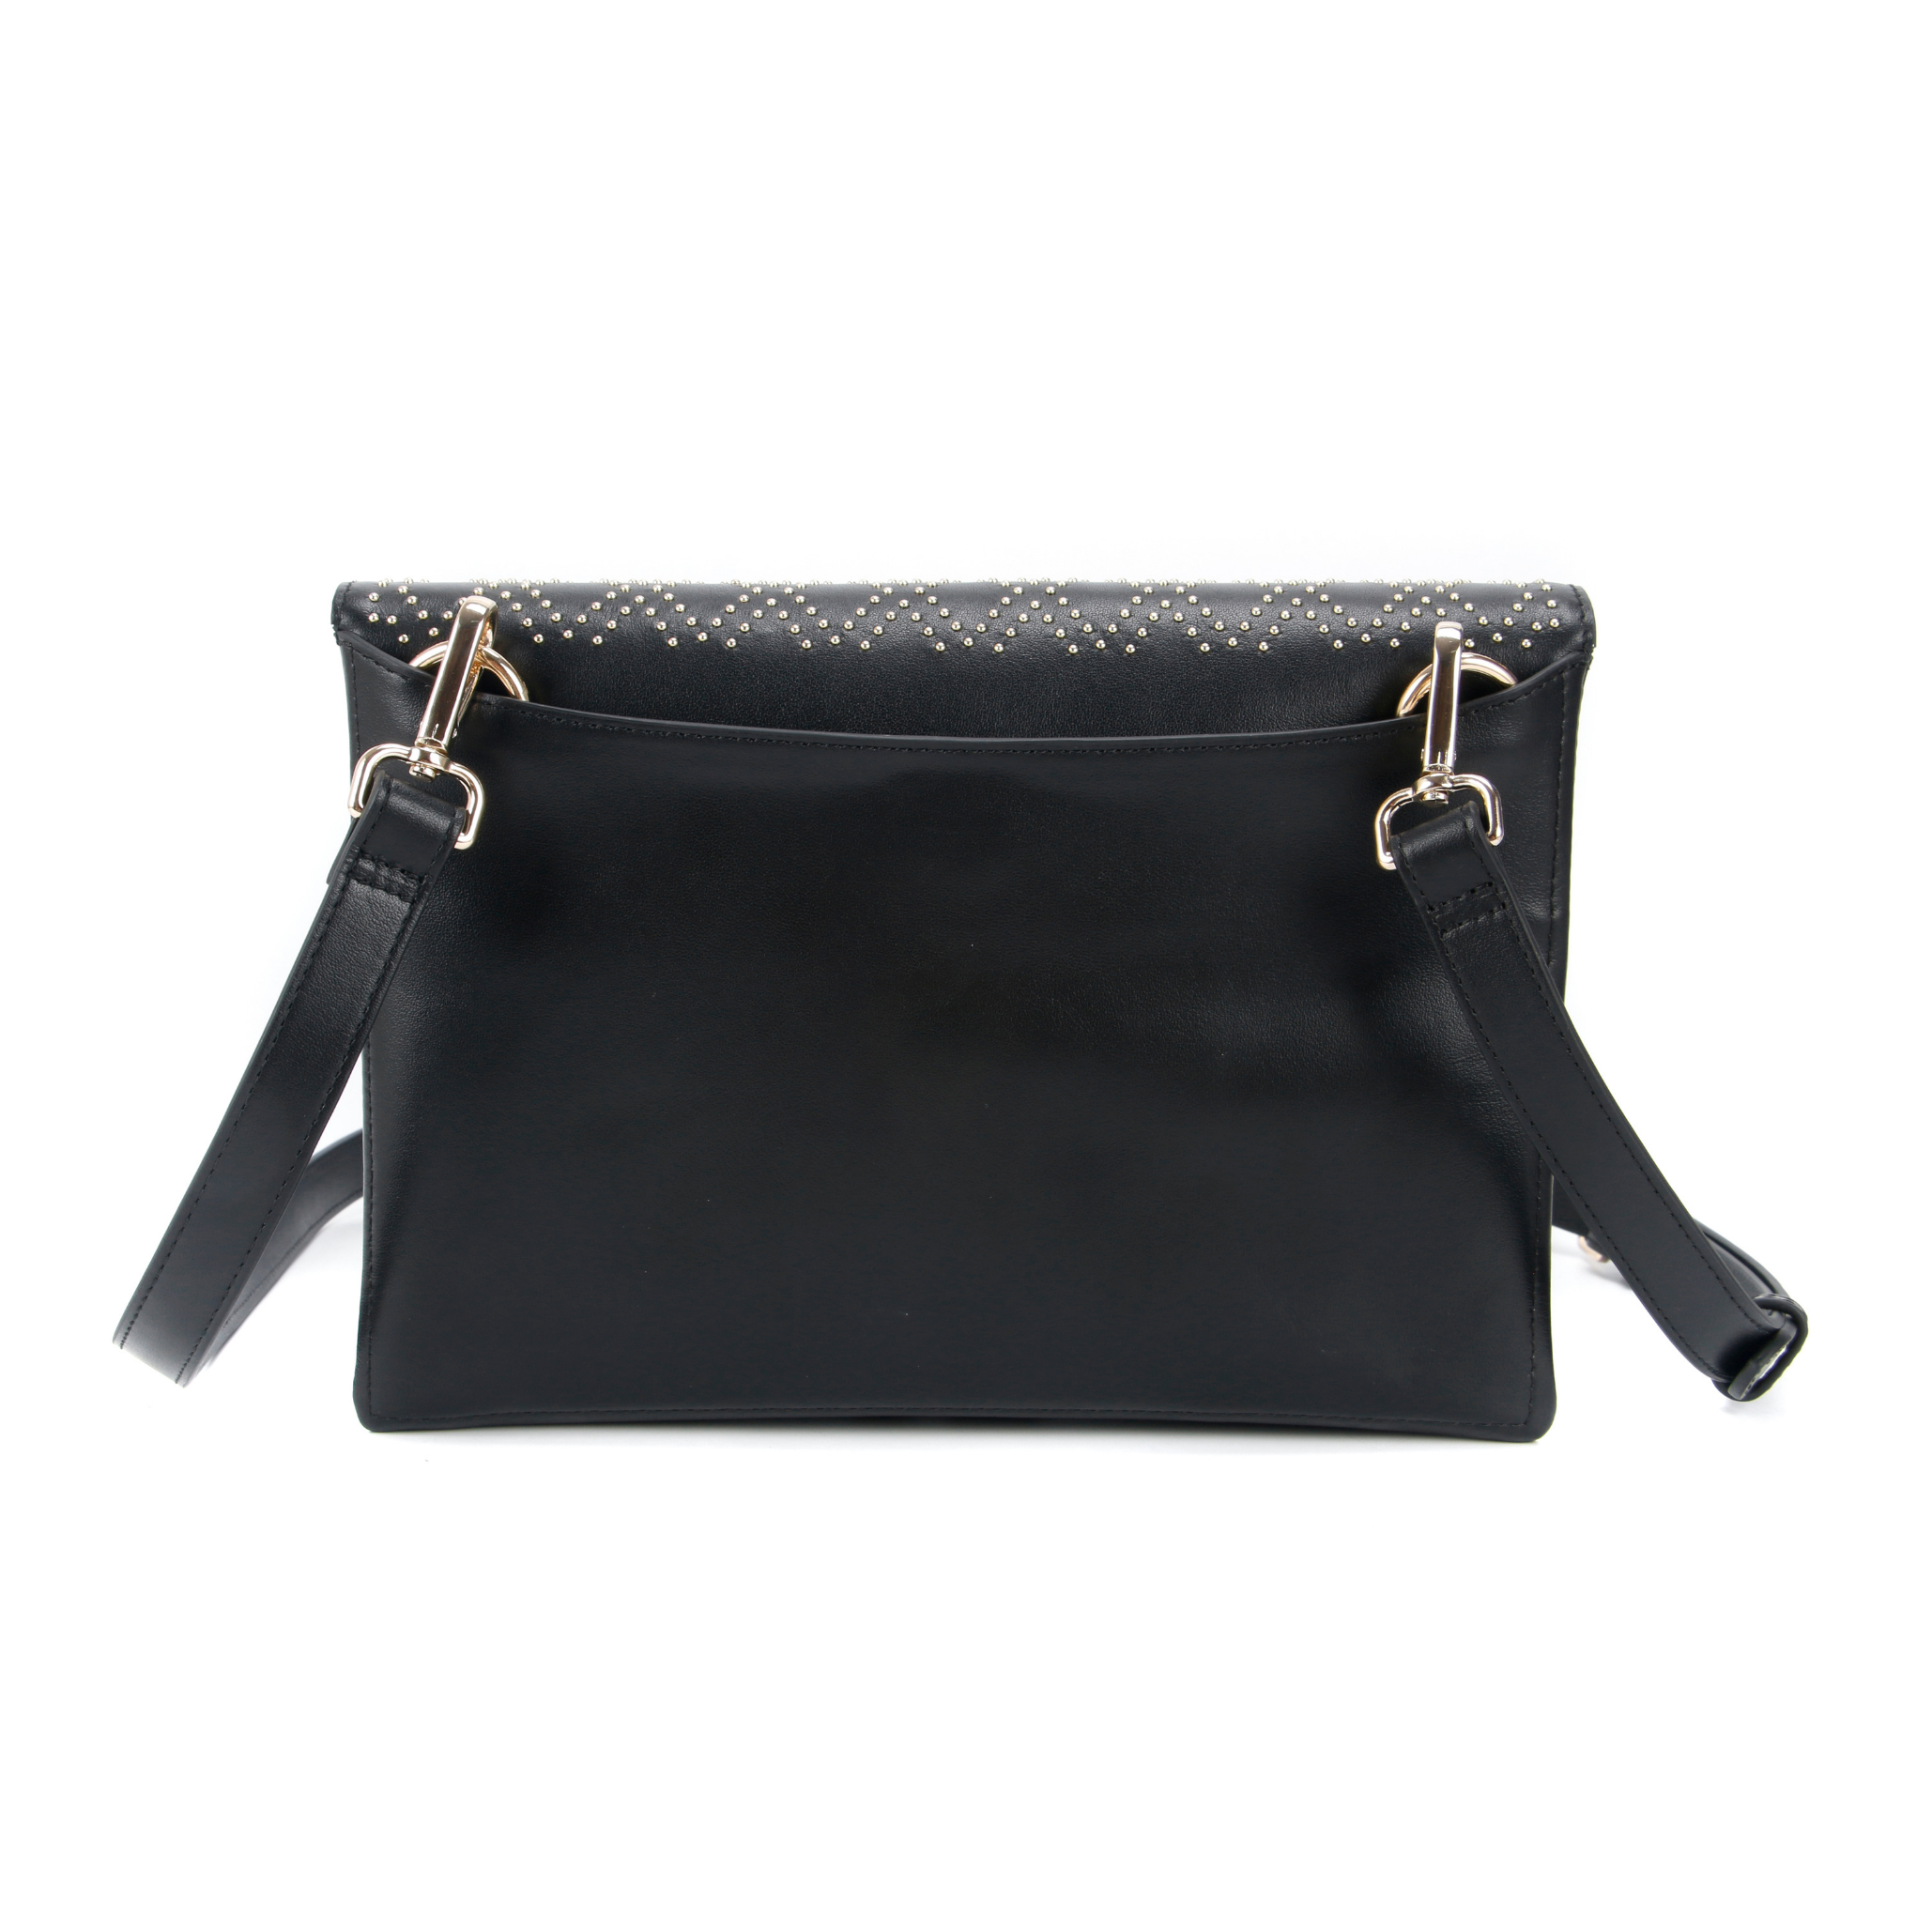 Black leather purse with cross body strap, images shows a back view of the purse. Perfect for date night.